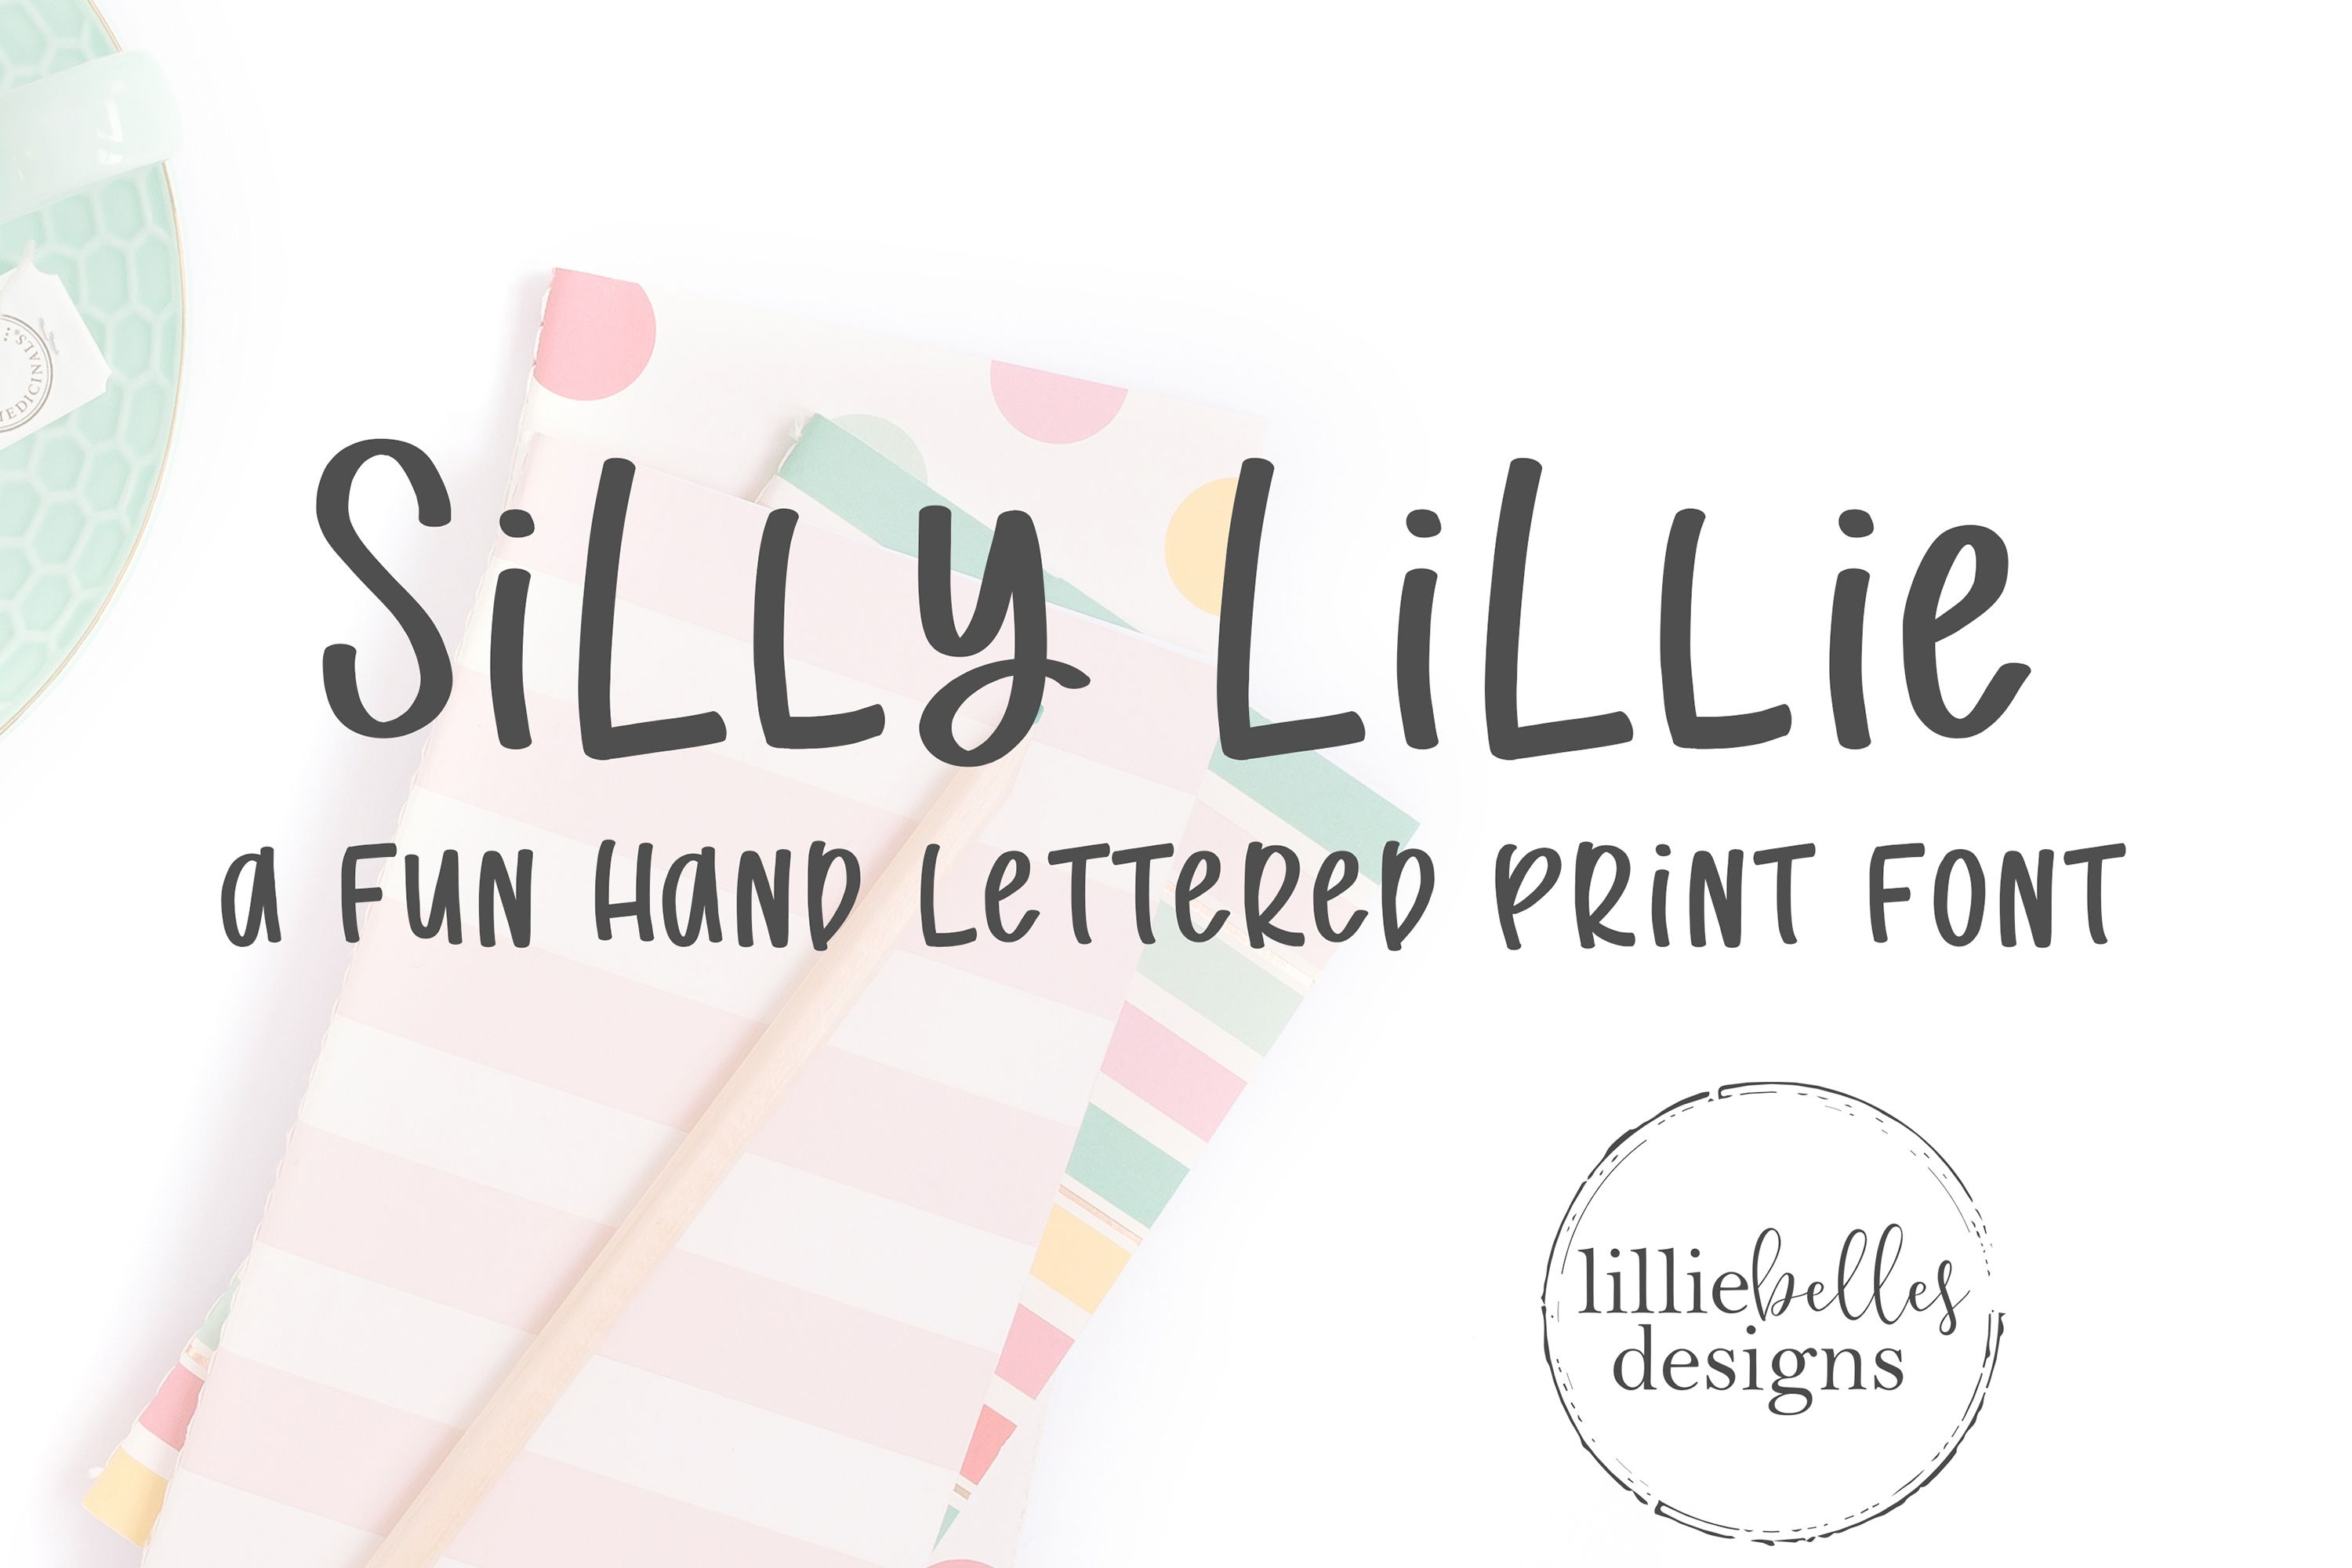 Silly Lillie In 2020 Print Fonts Cool Fonts Lettering